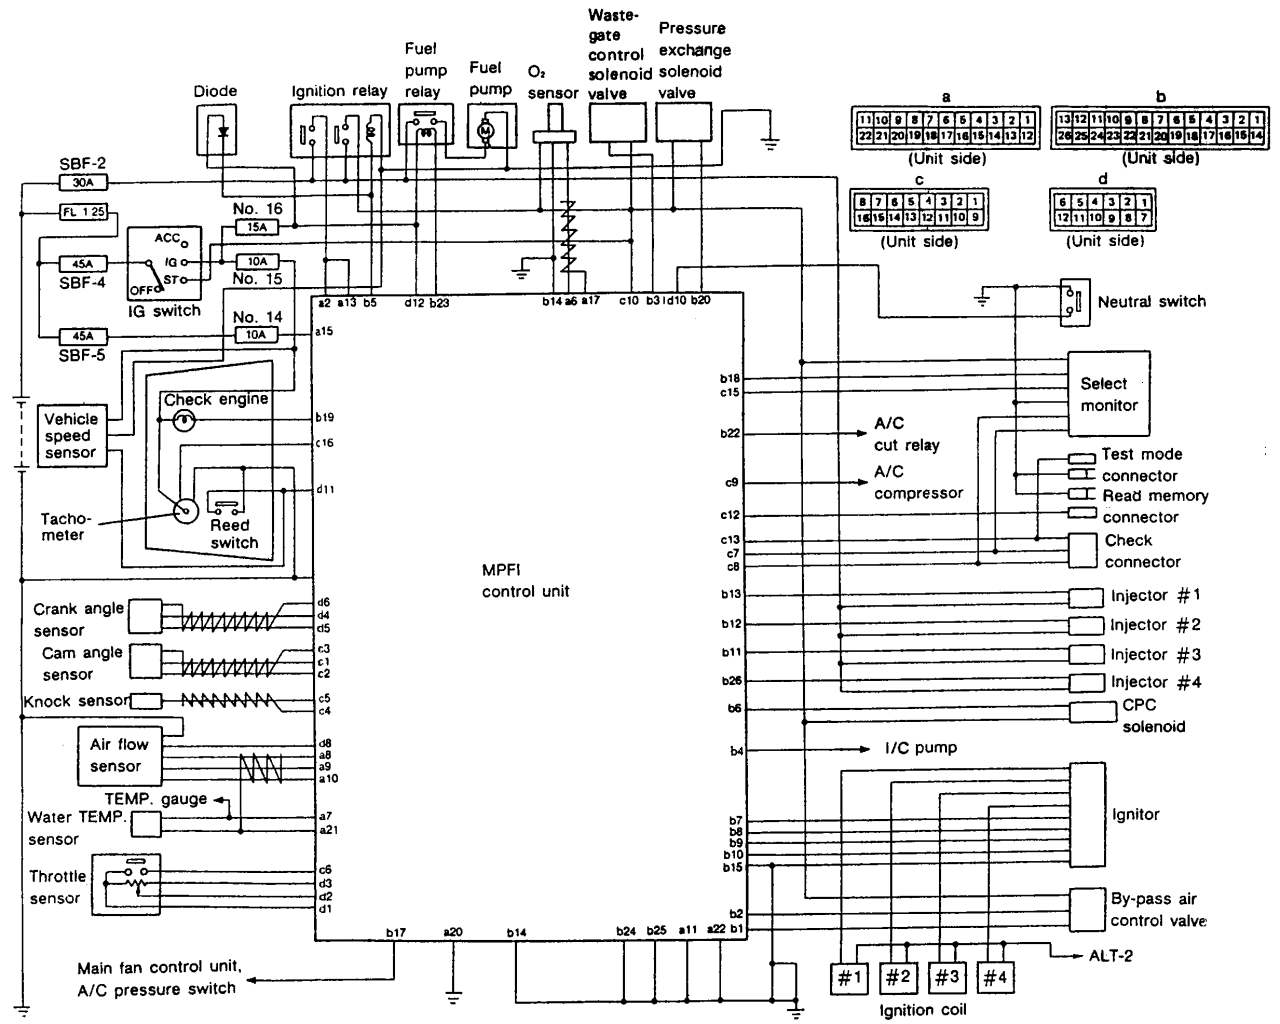 hight resolution of 95 impreza wiring diagrams pdf wiring diagram site1996 subaru impreza wiring diagram data wiring diagram 95